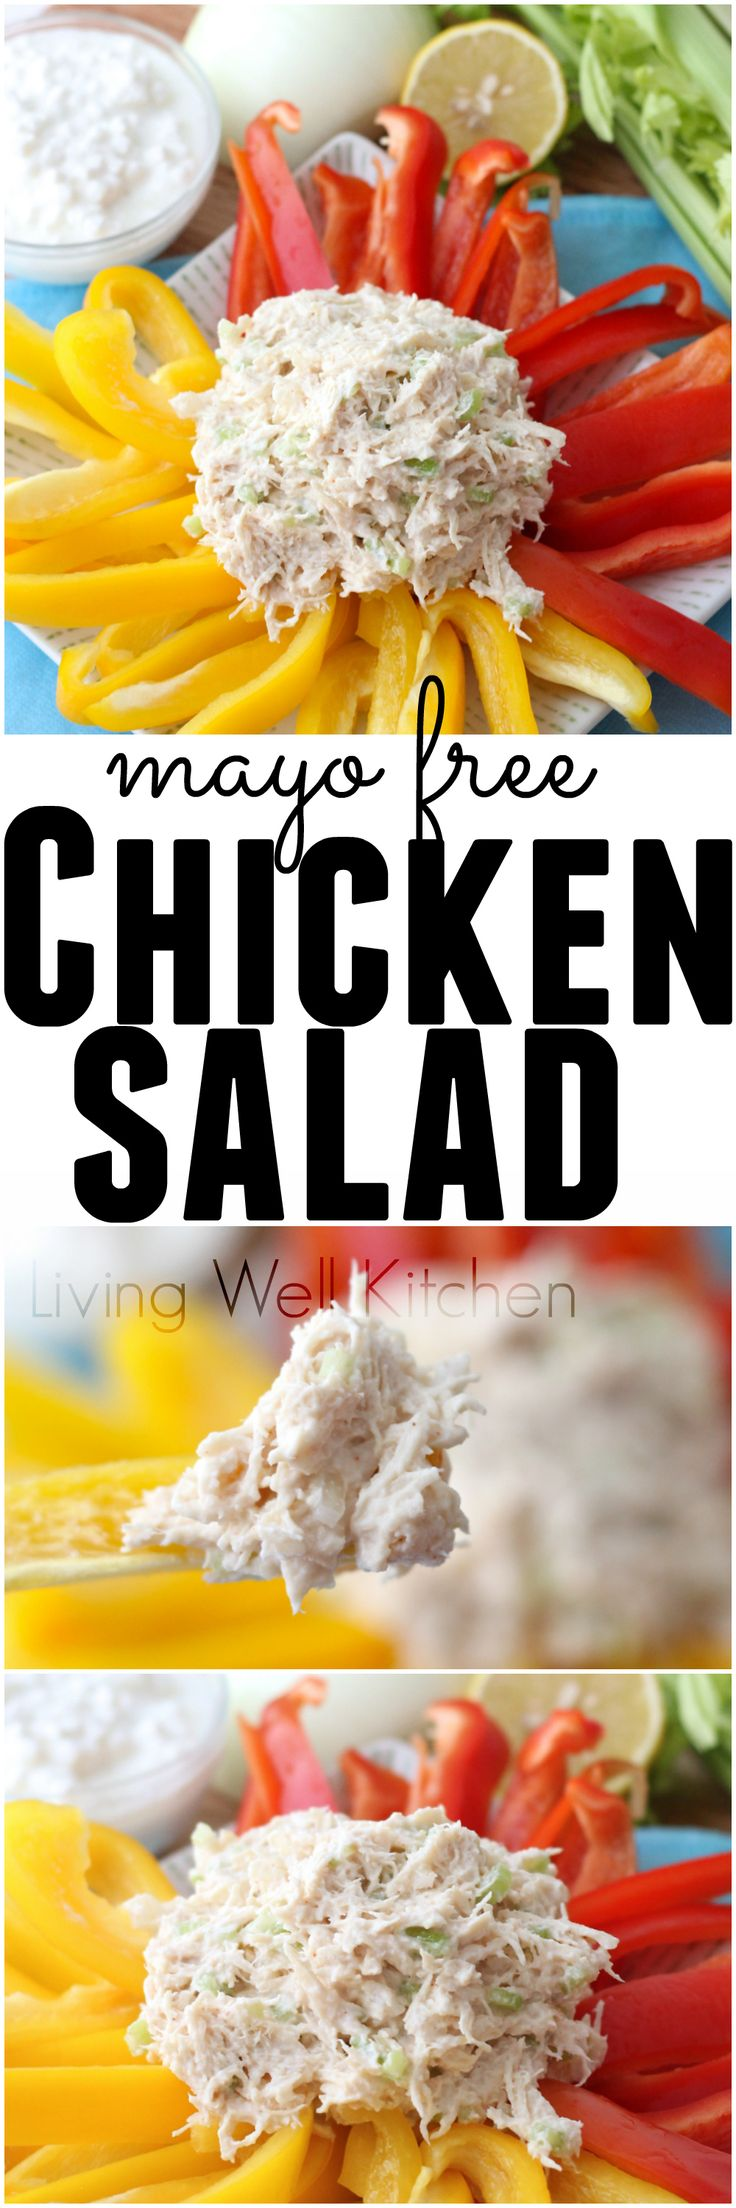 Lightly seasoned and packed with lean protein, this is chicken salad perfection that you can feel good about eating. Mayo free Chicken Salad recipe from @memeinge || http://memeinge.com/blog/chicken-salad/